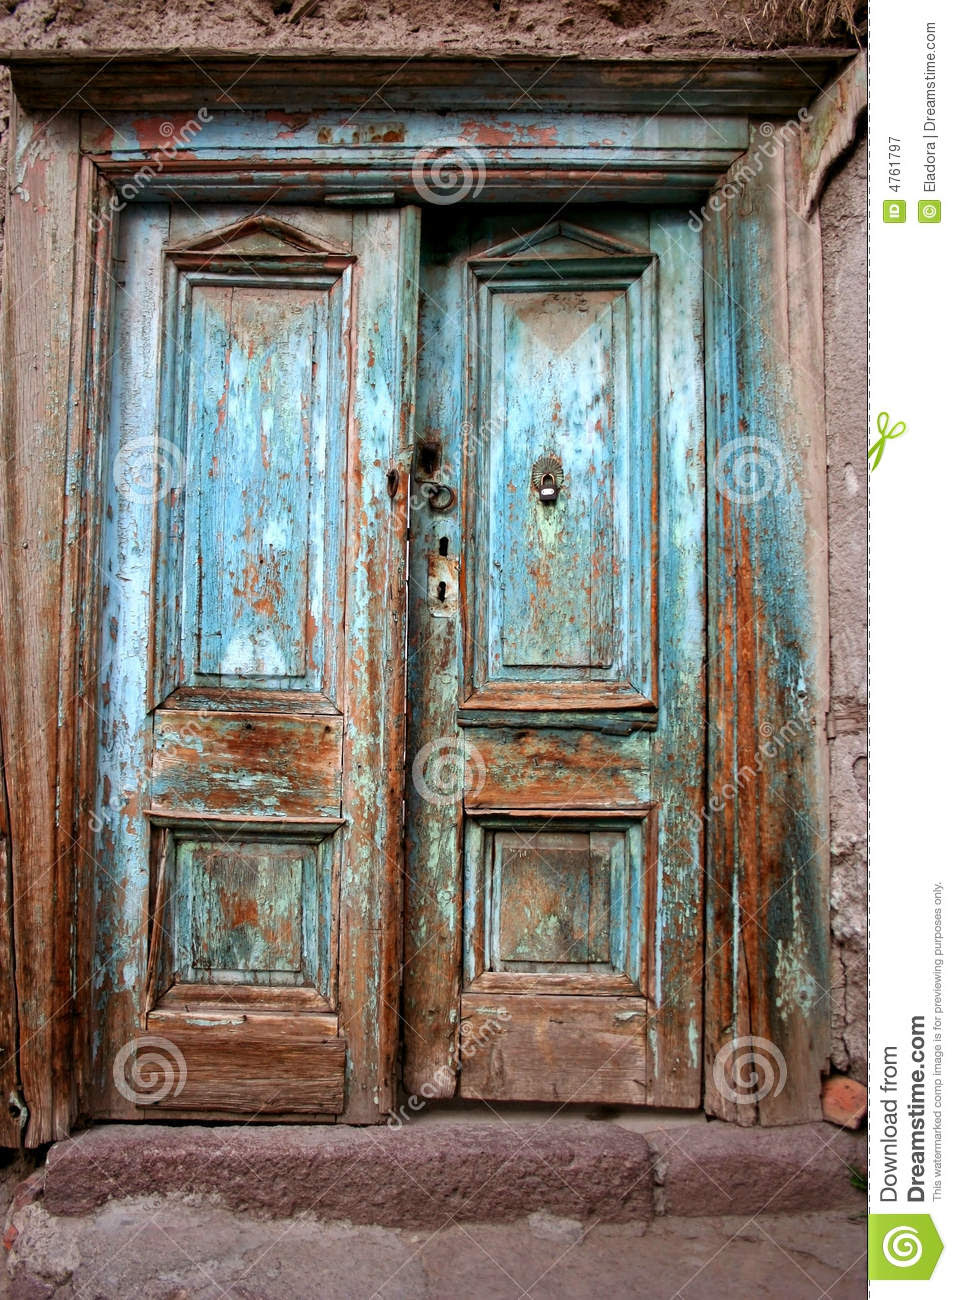 Antique Doors - Antique DoorsConfession